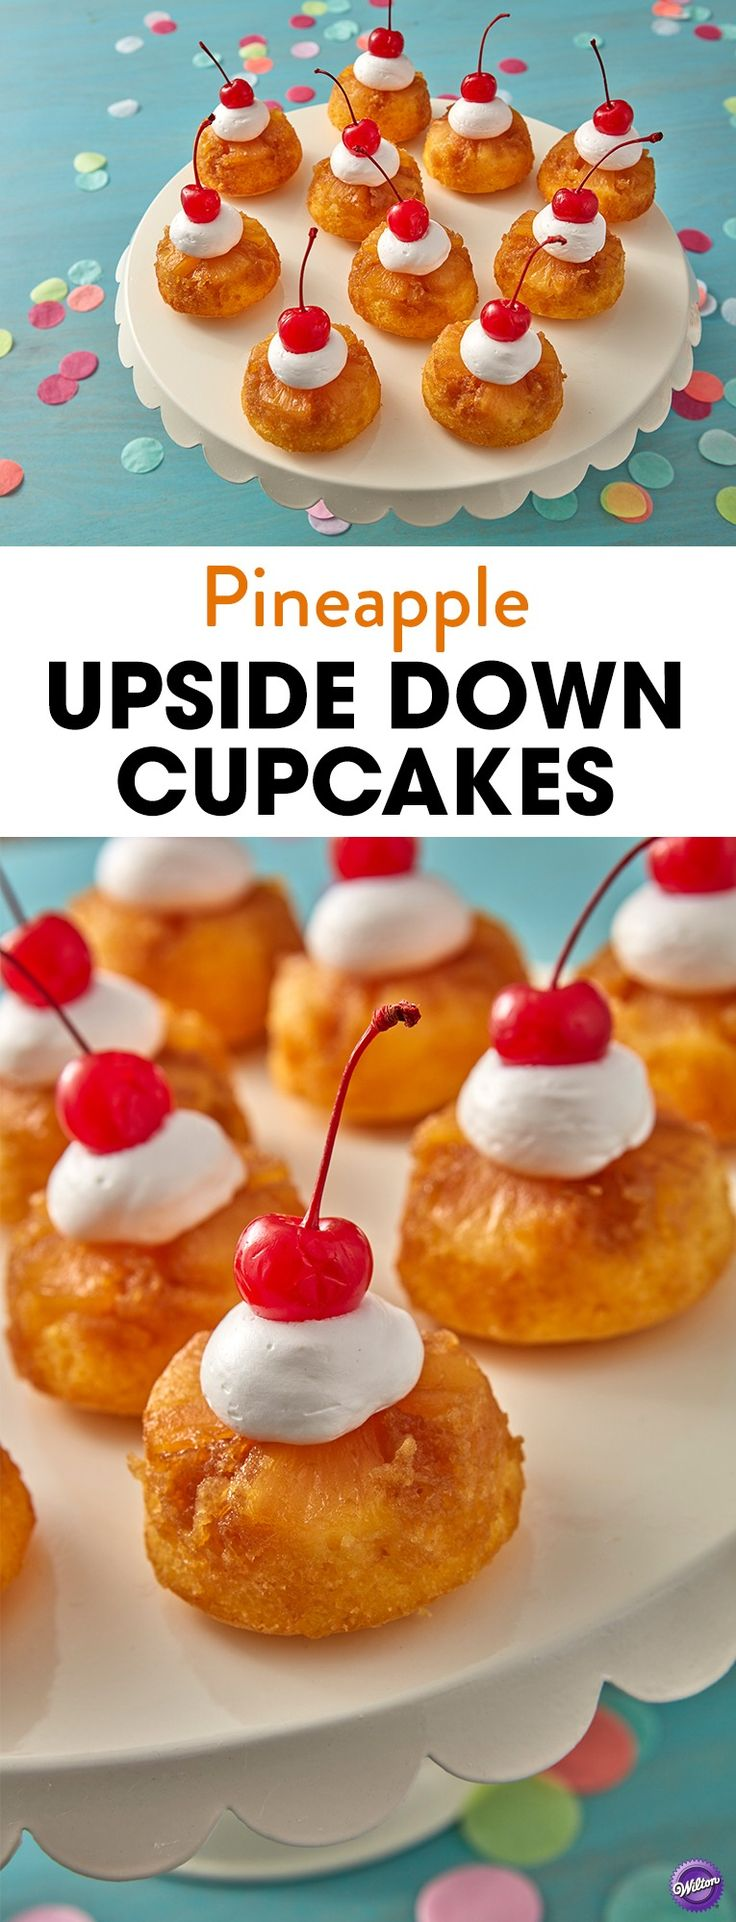 Enjoy a taste of island living with these Coconut Pineapple Upside Down Cakes. Flavored with coconut rum, brown sugar and pineapple juice, these pineapple upside down cupcakes offer a little escape to paradise. Use the Wilton mega muffin pan to make several cakes for a luau party, summer shower or indoor beach party!